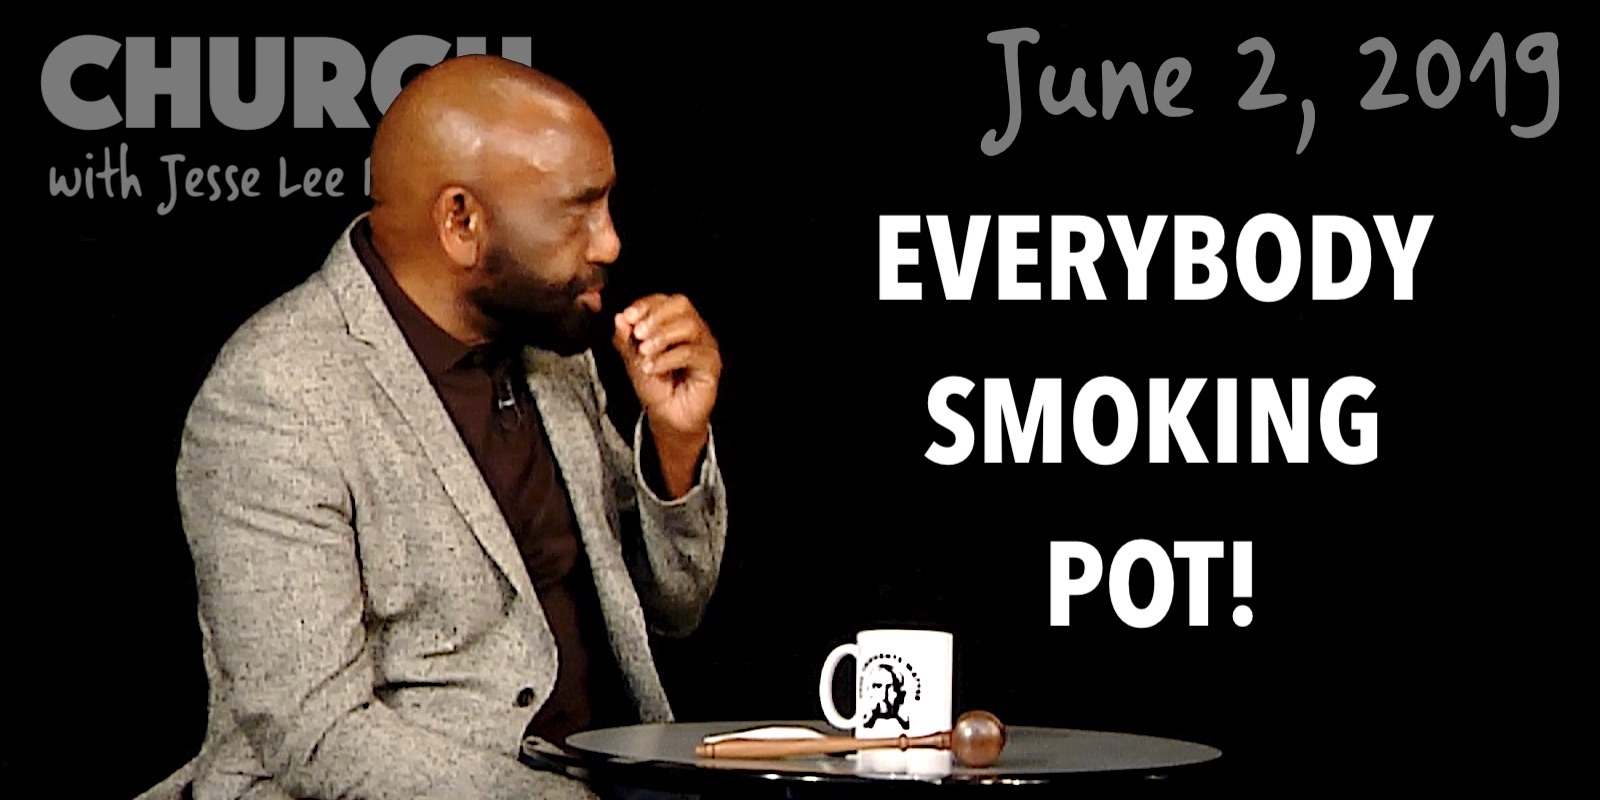 Everybody Smoking Pot! (Church, June 2, 2019)